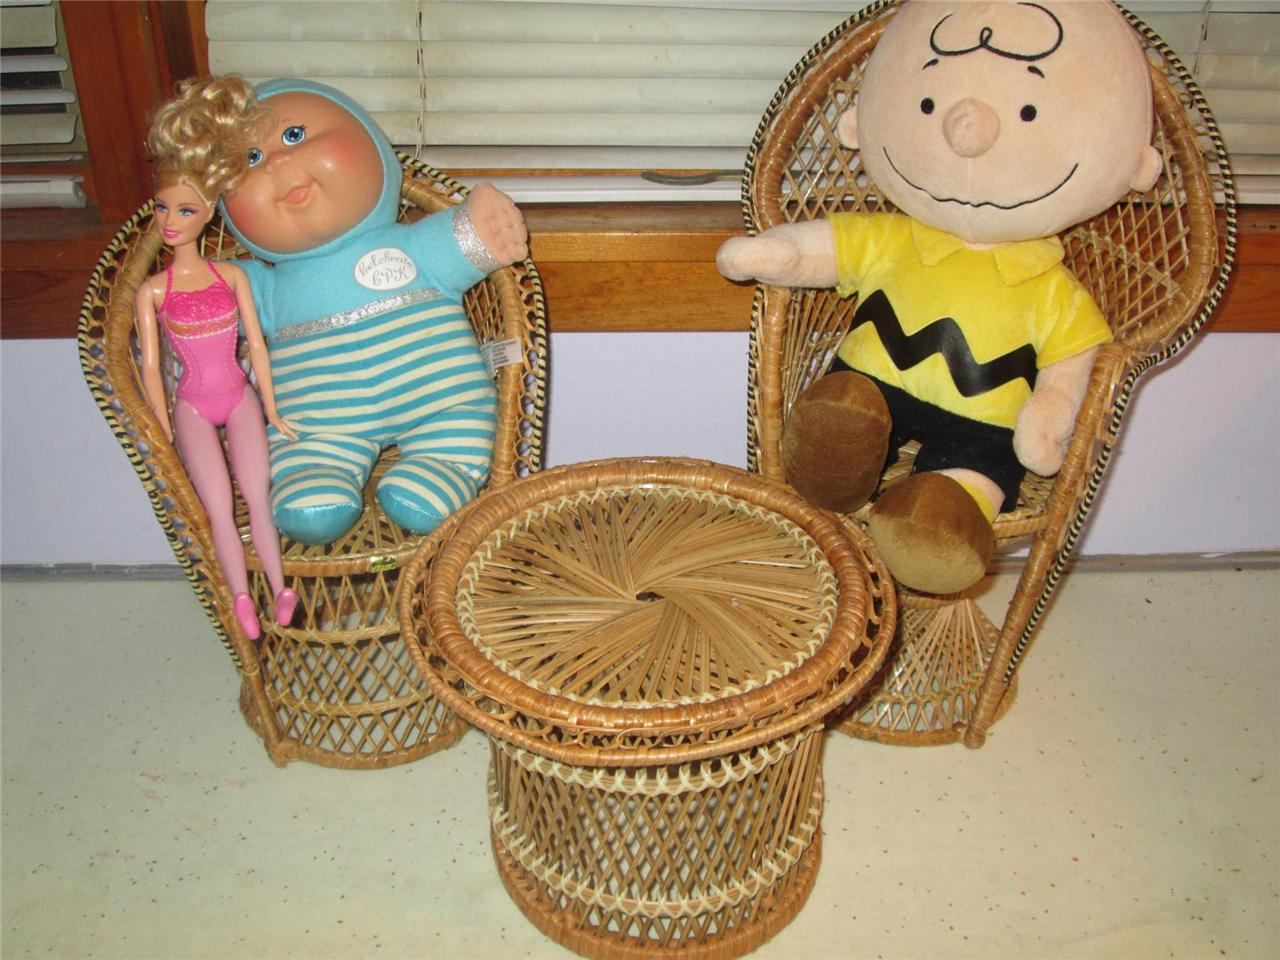 2 chairs and table rattan kidkraft farmhouse chair set natural 3 vintage wicker doll bear furniture